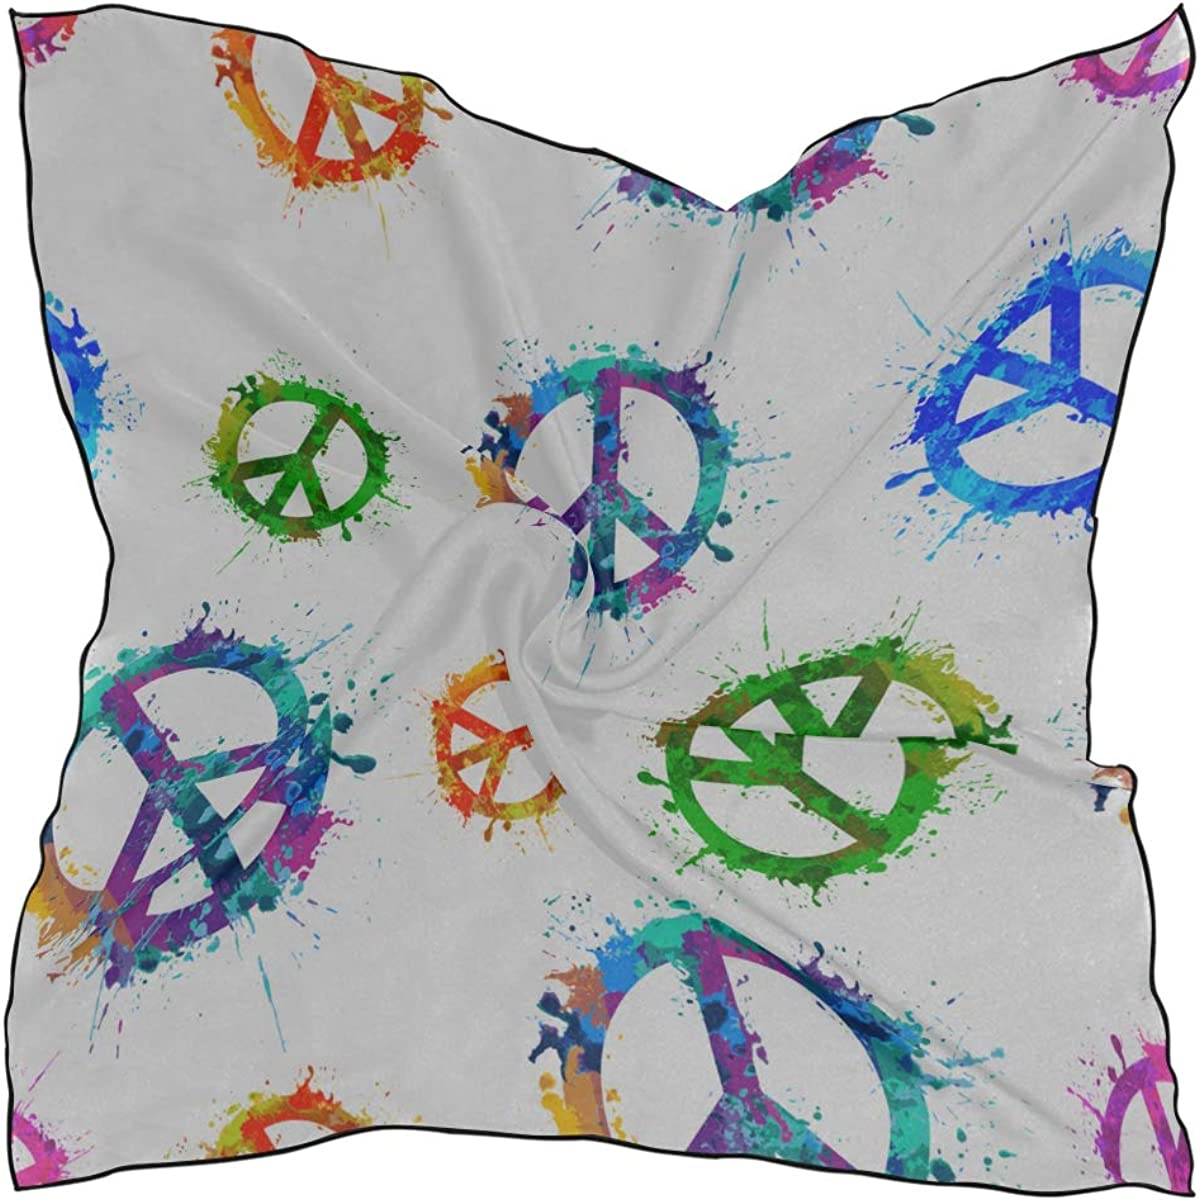 Soft Polyester Silk Head-scarf Fashion Print Colorful Peace Sign Happiness Scarf Scrunchie Scarves Neck Scarf For Women Multiple Ways Of Wearing Daily Decor